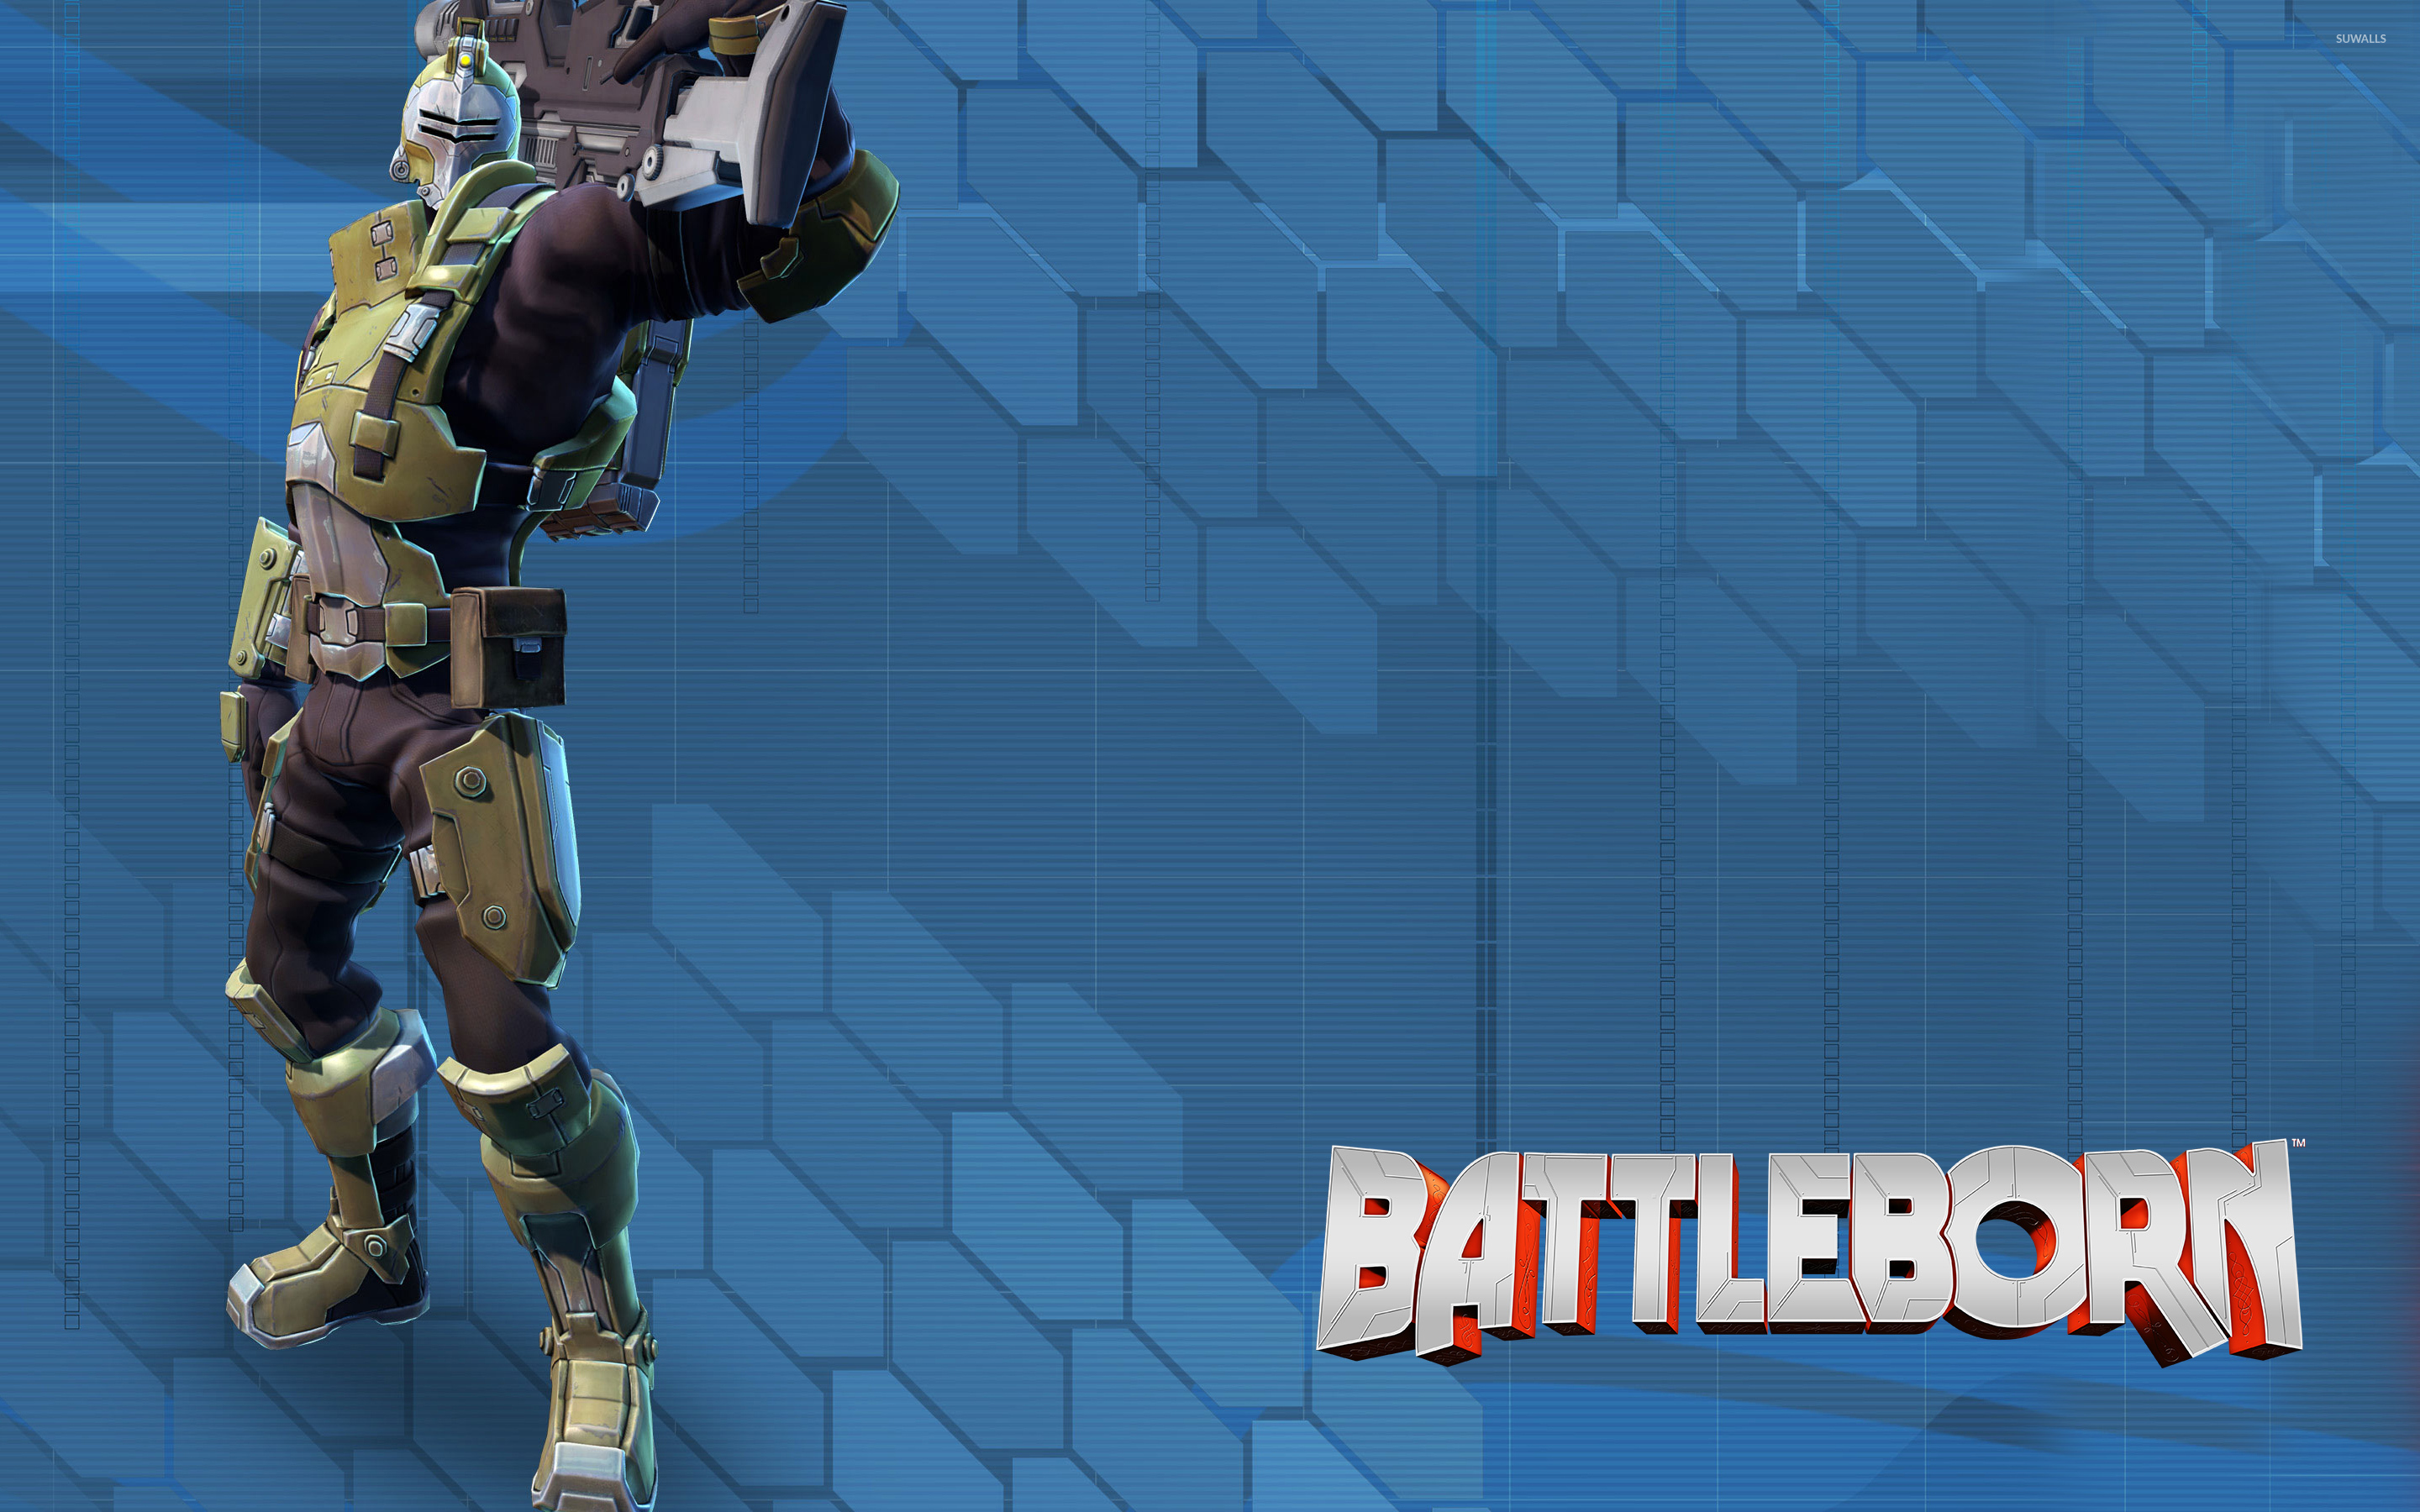 Oscar Mike With His Assault Rifle Battleborn Wallpaper Game Wallpapers 50112